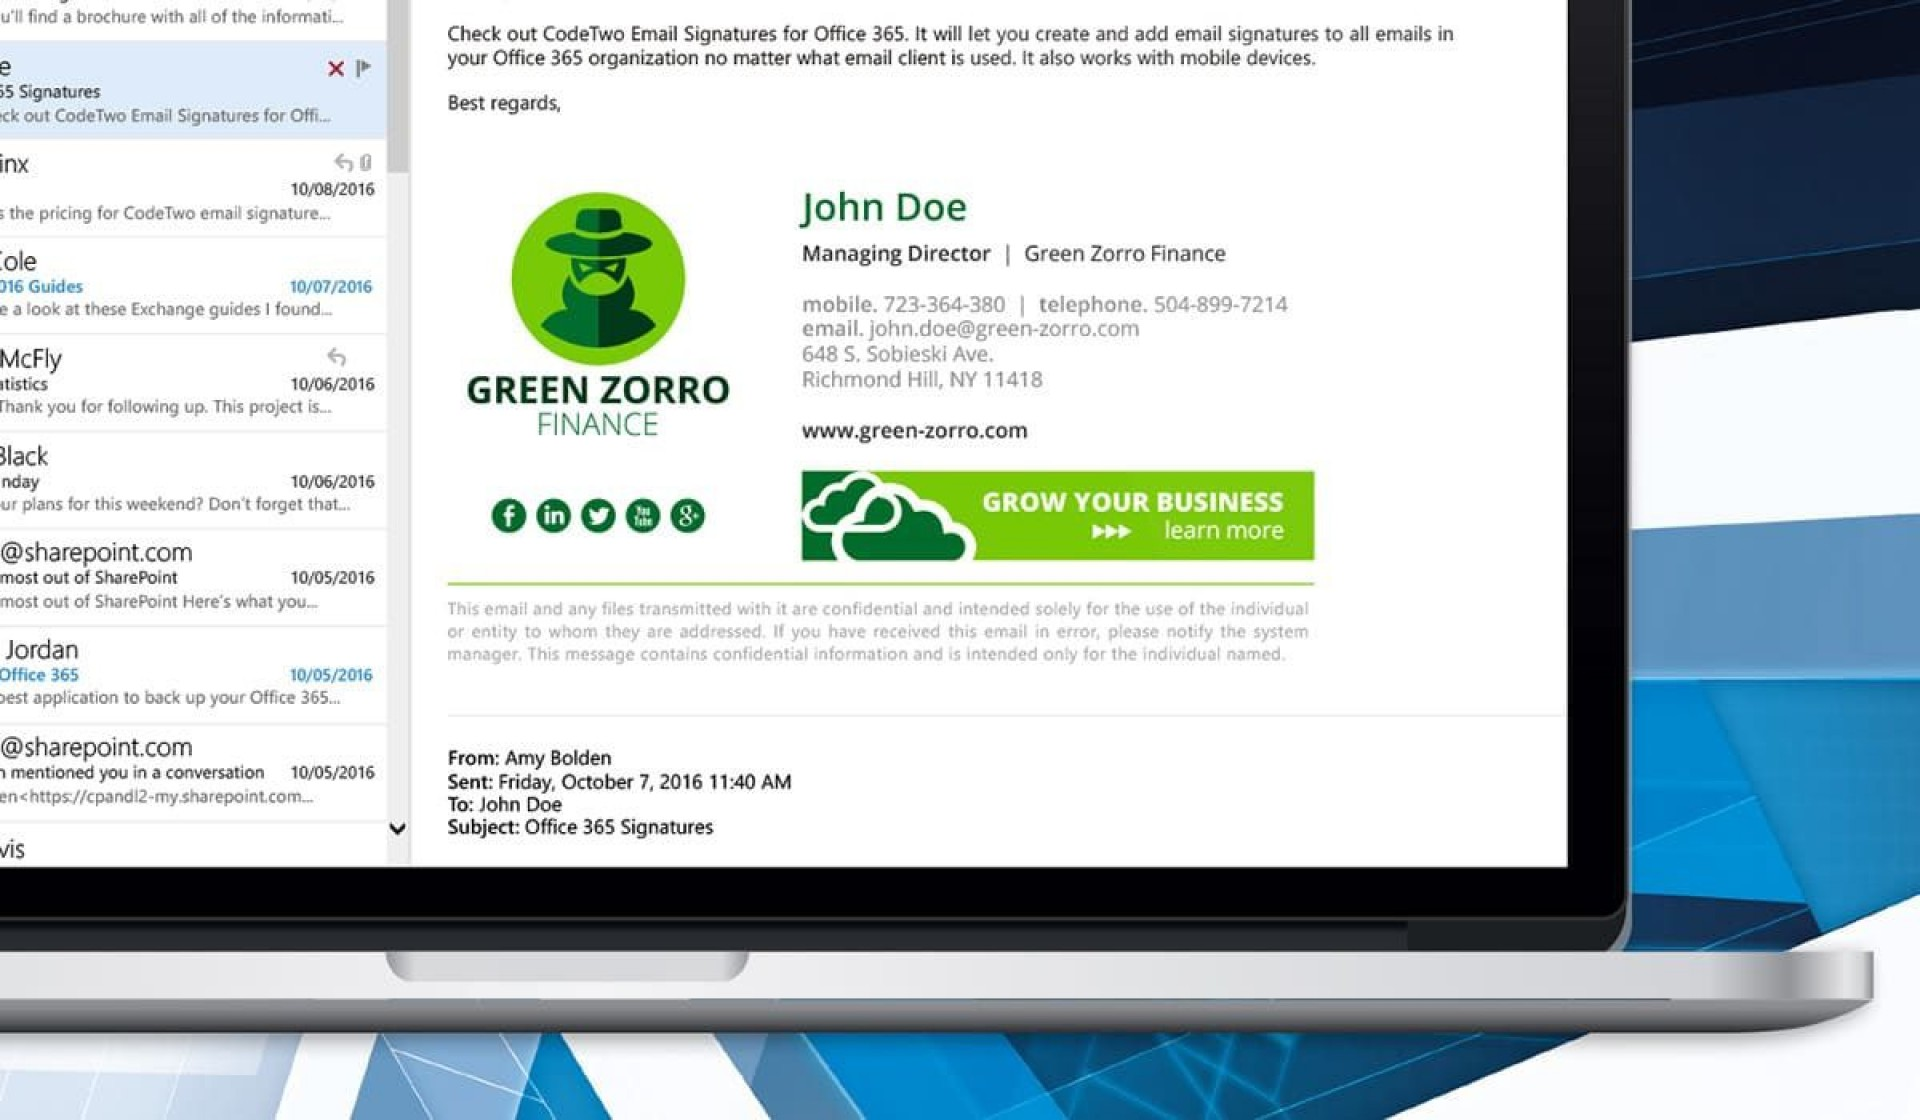 008 Rare Outlook Email Signature Template Inspiration  Example Free Download Best1920